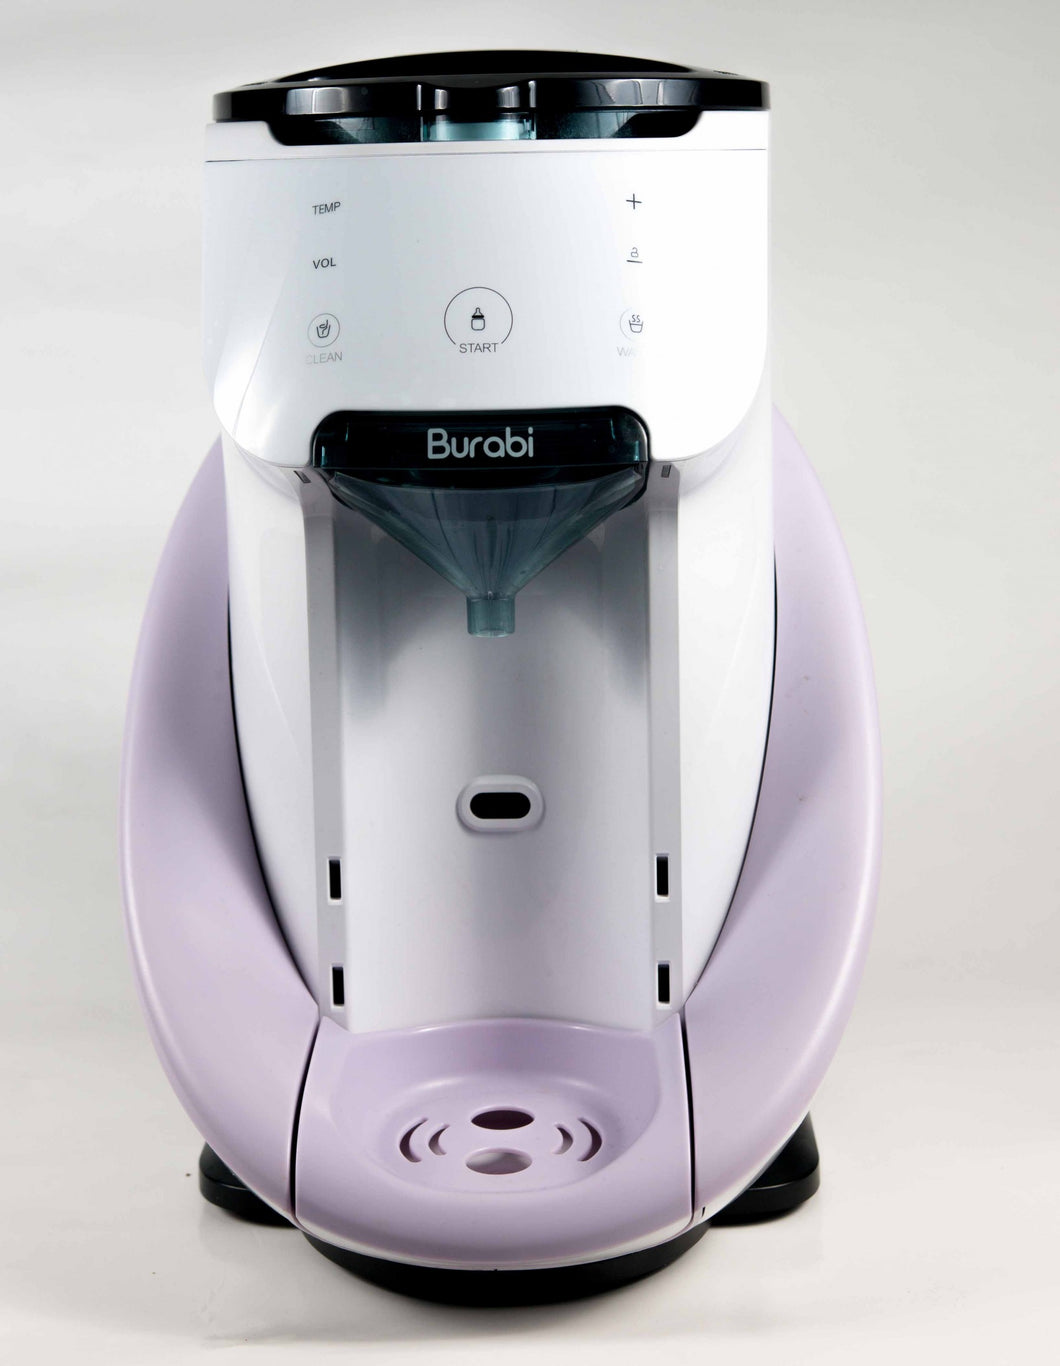 BURABI SMART BABY FORMULA DISPENSER,MILK MAKER WITH APP CONTROL